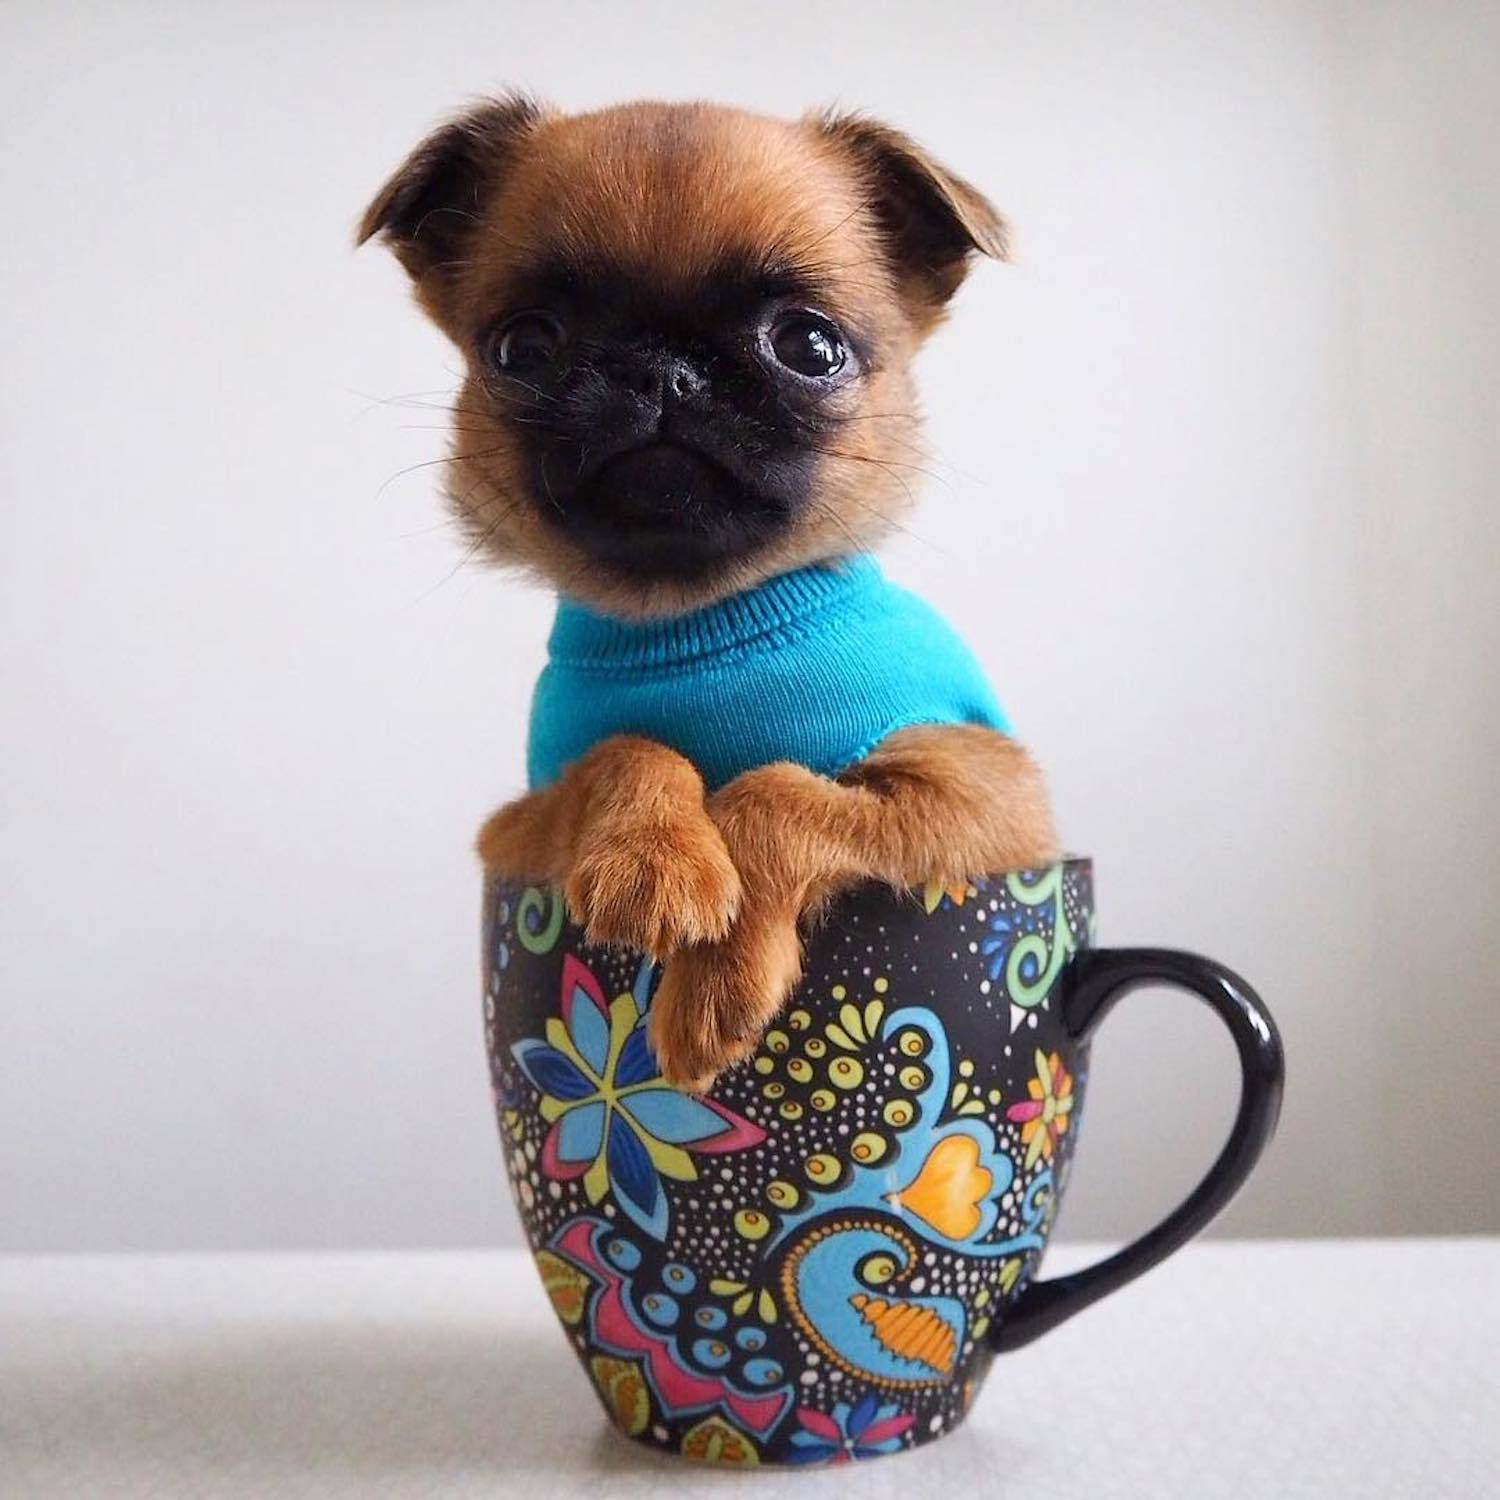 Brussels griffon dog in a cup